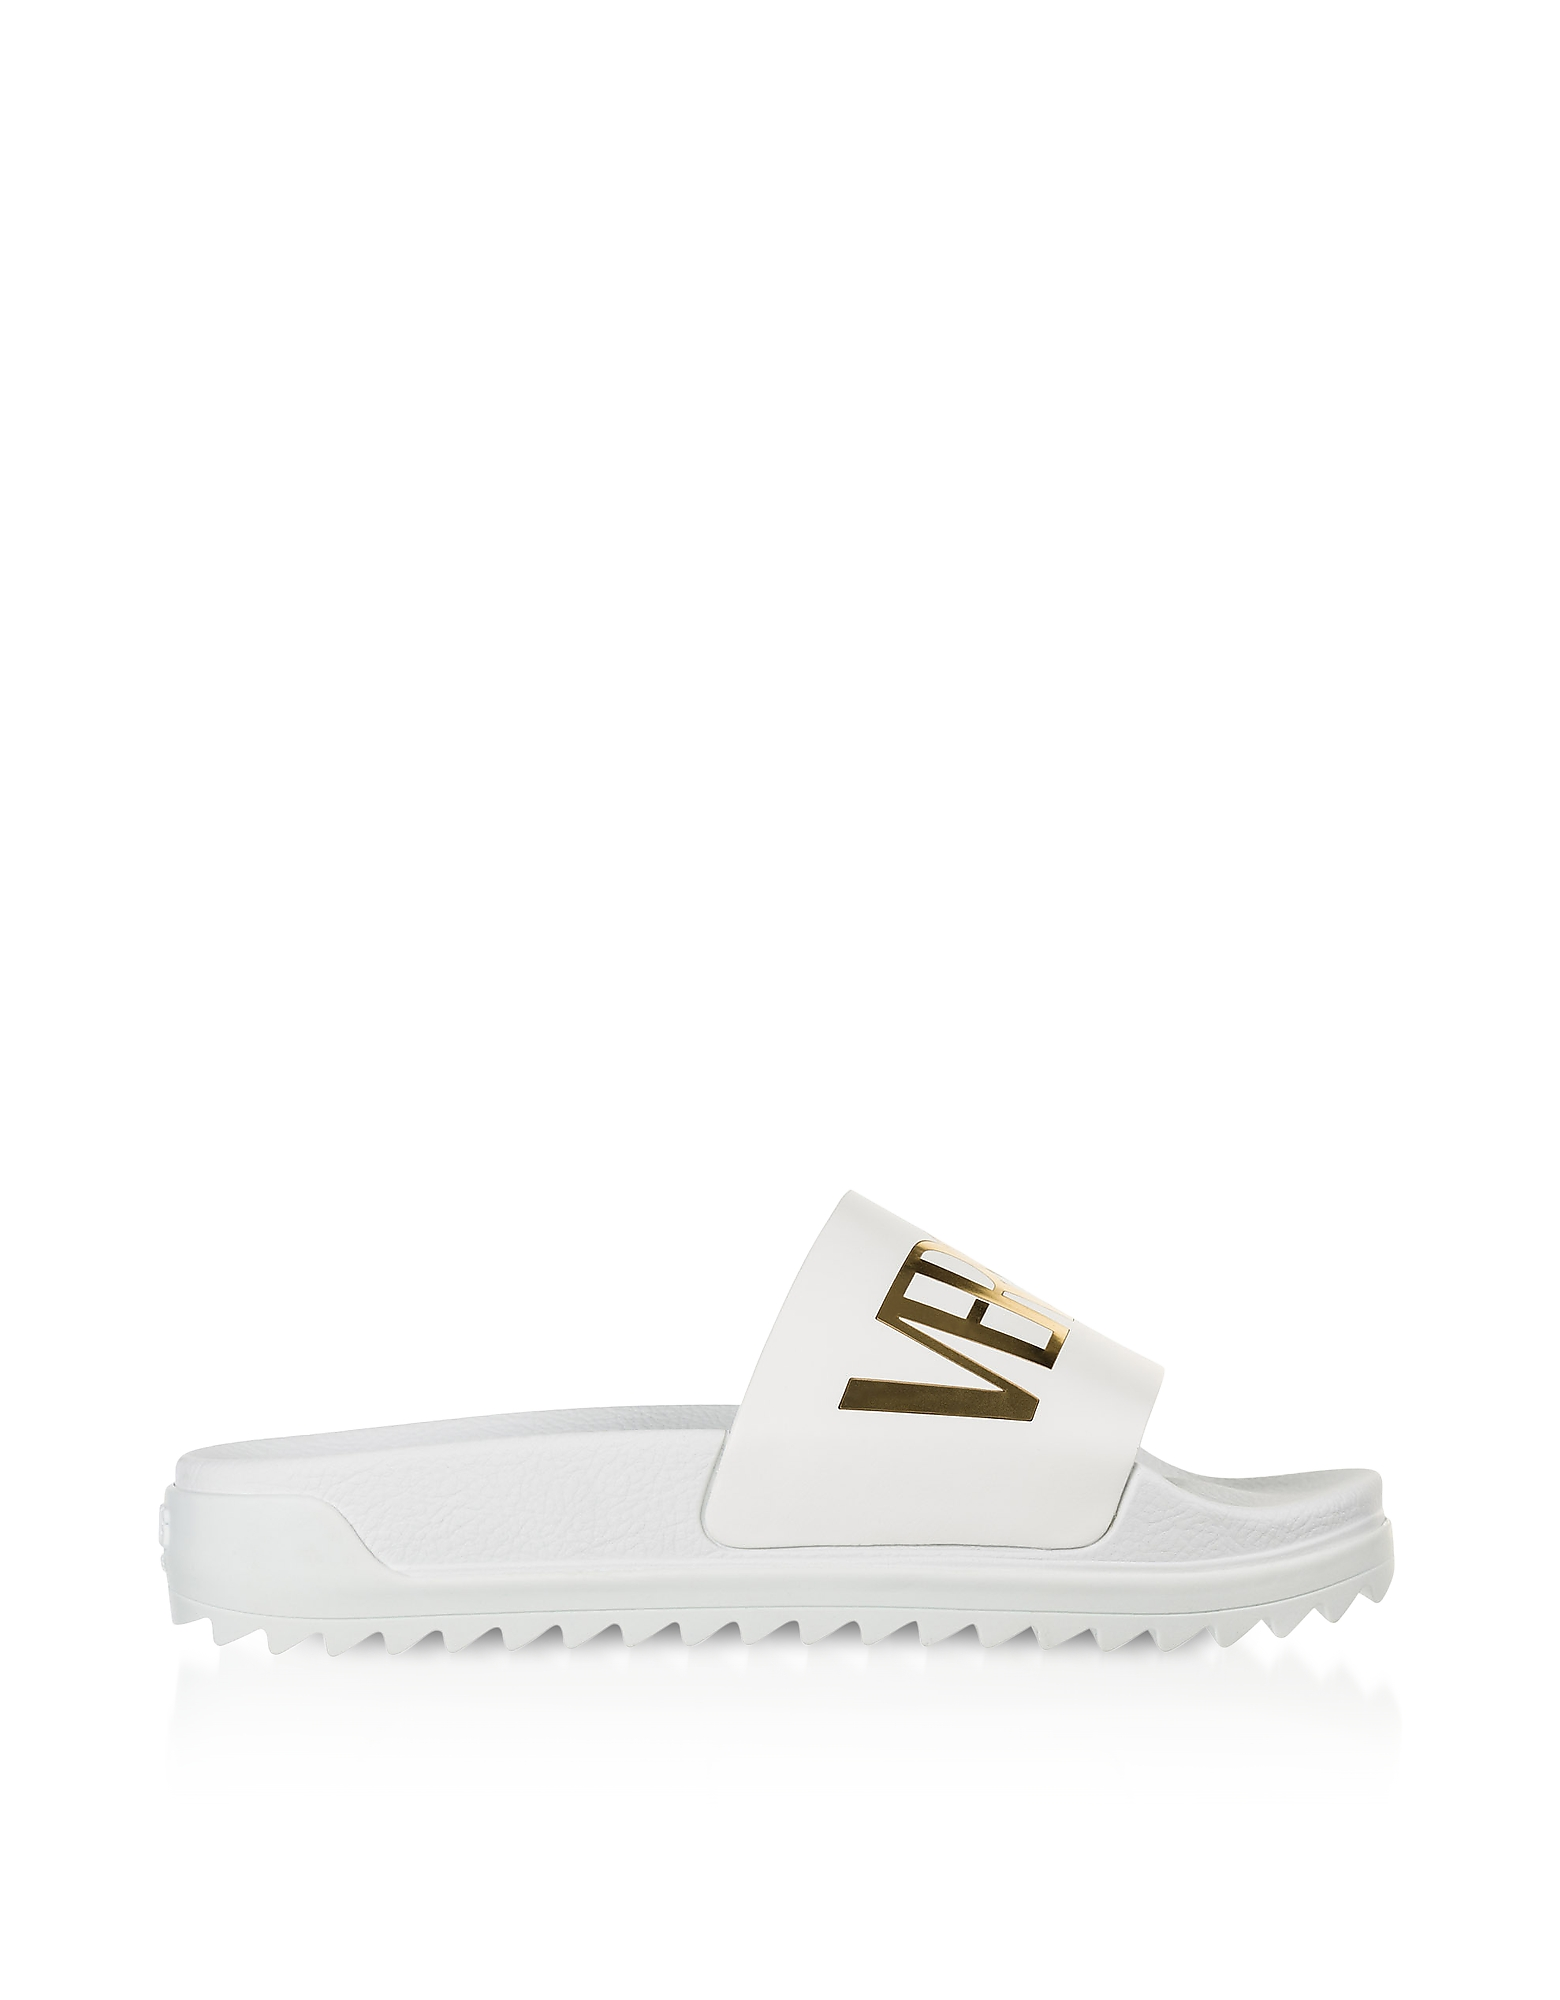 Optic White Coated Canvas Men's Pool Sandals